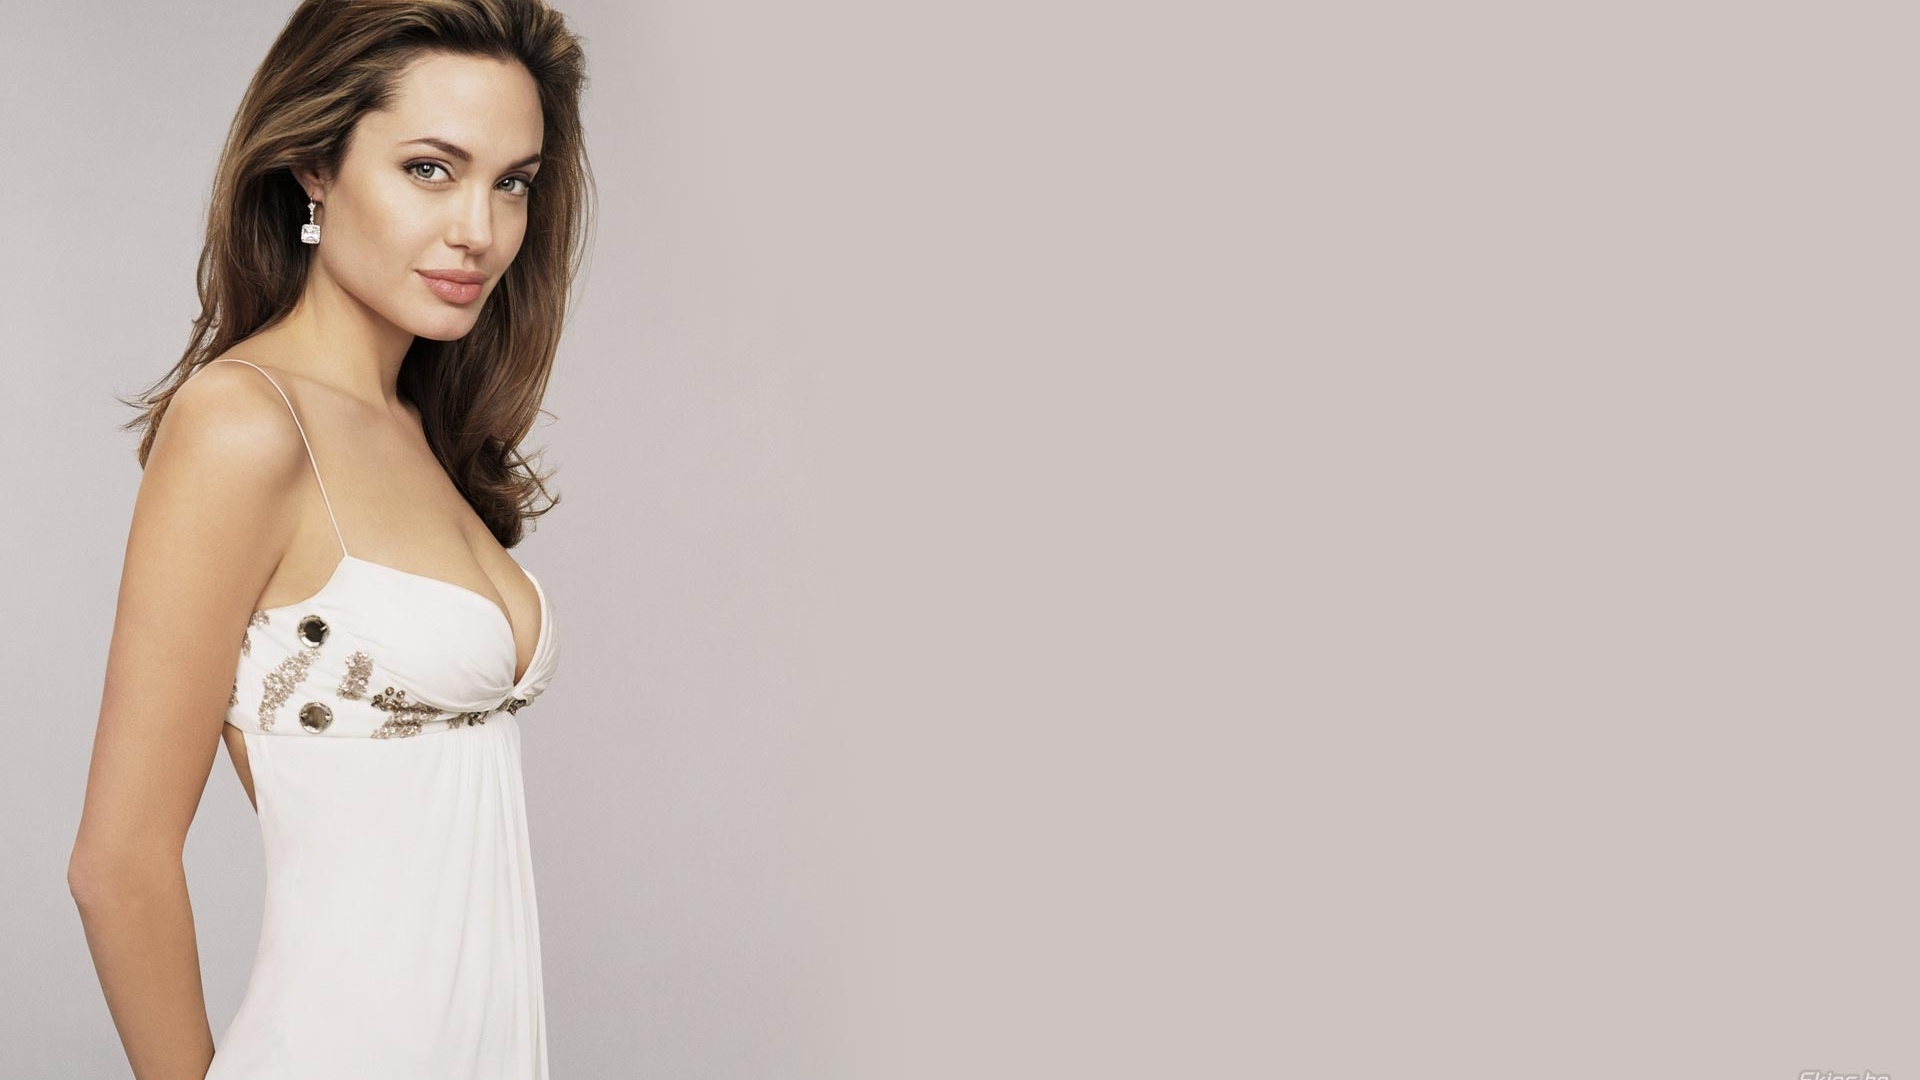 Angelina Jolie Wallpapers HQ